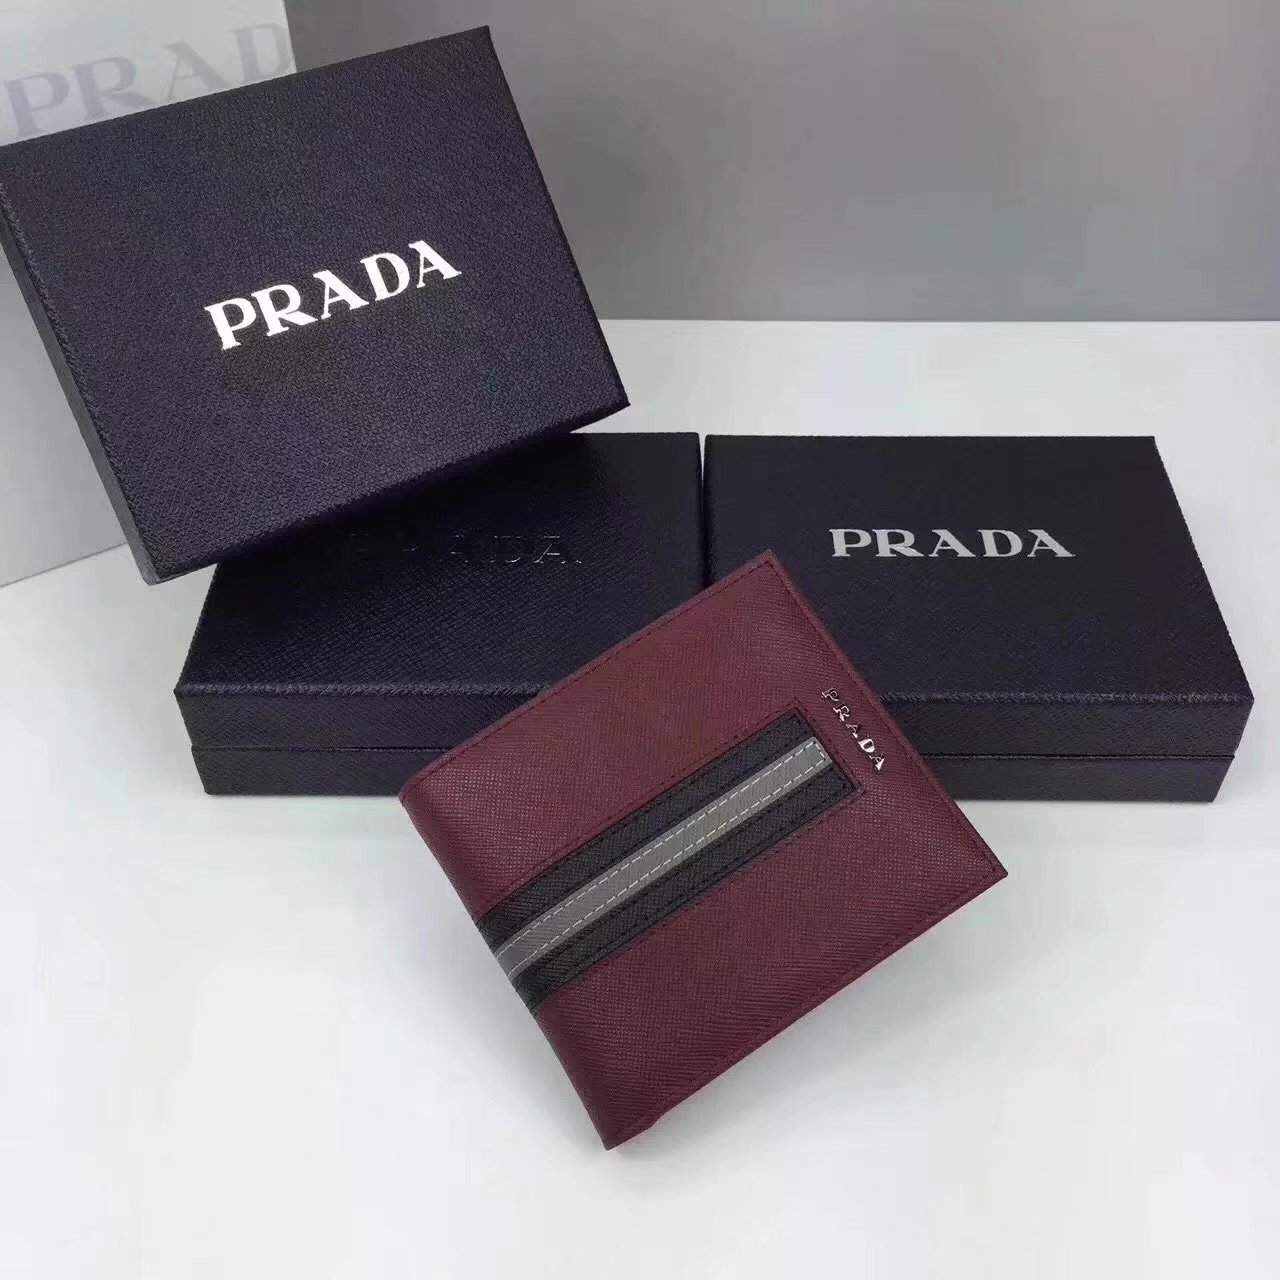 Prada F0002 Men Saffiano Leather Wallet with Intarsia Contrasting Color Red